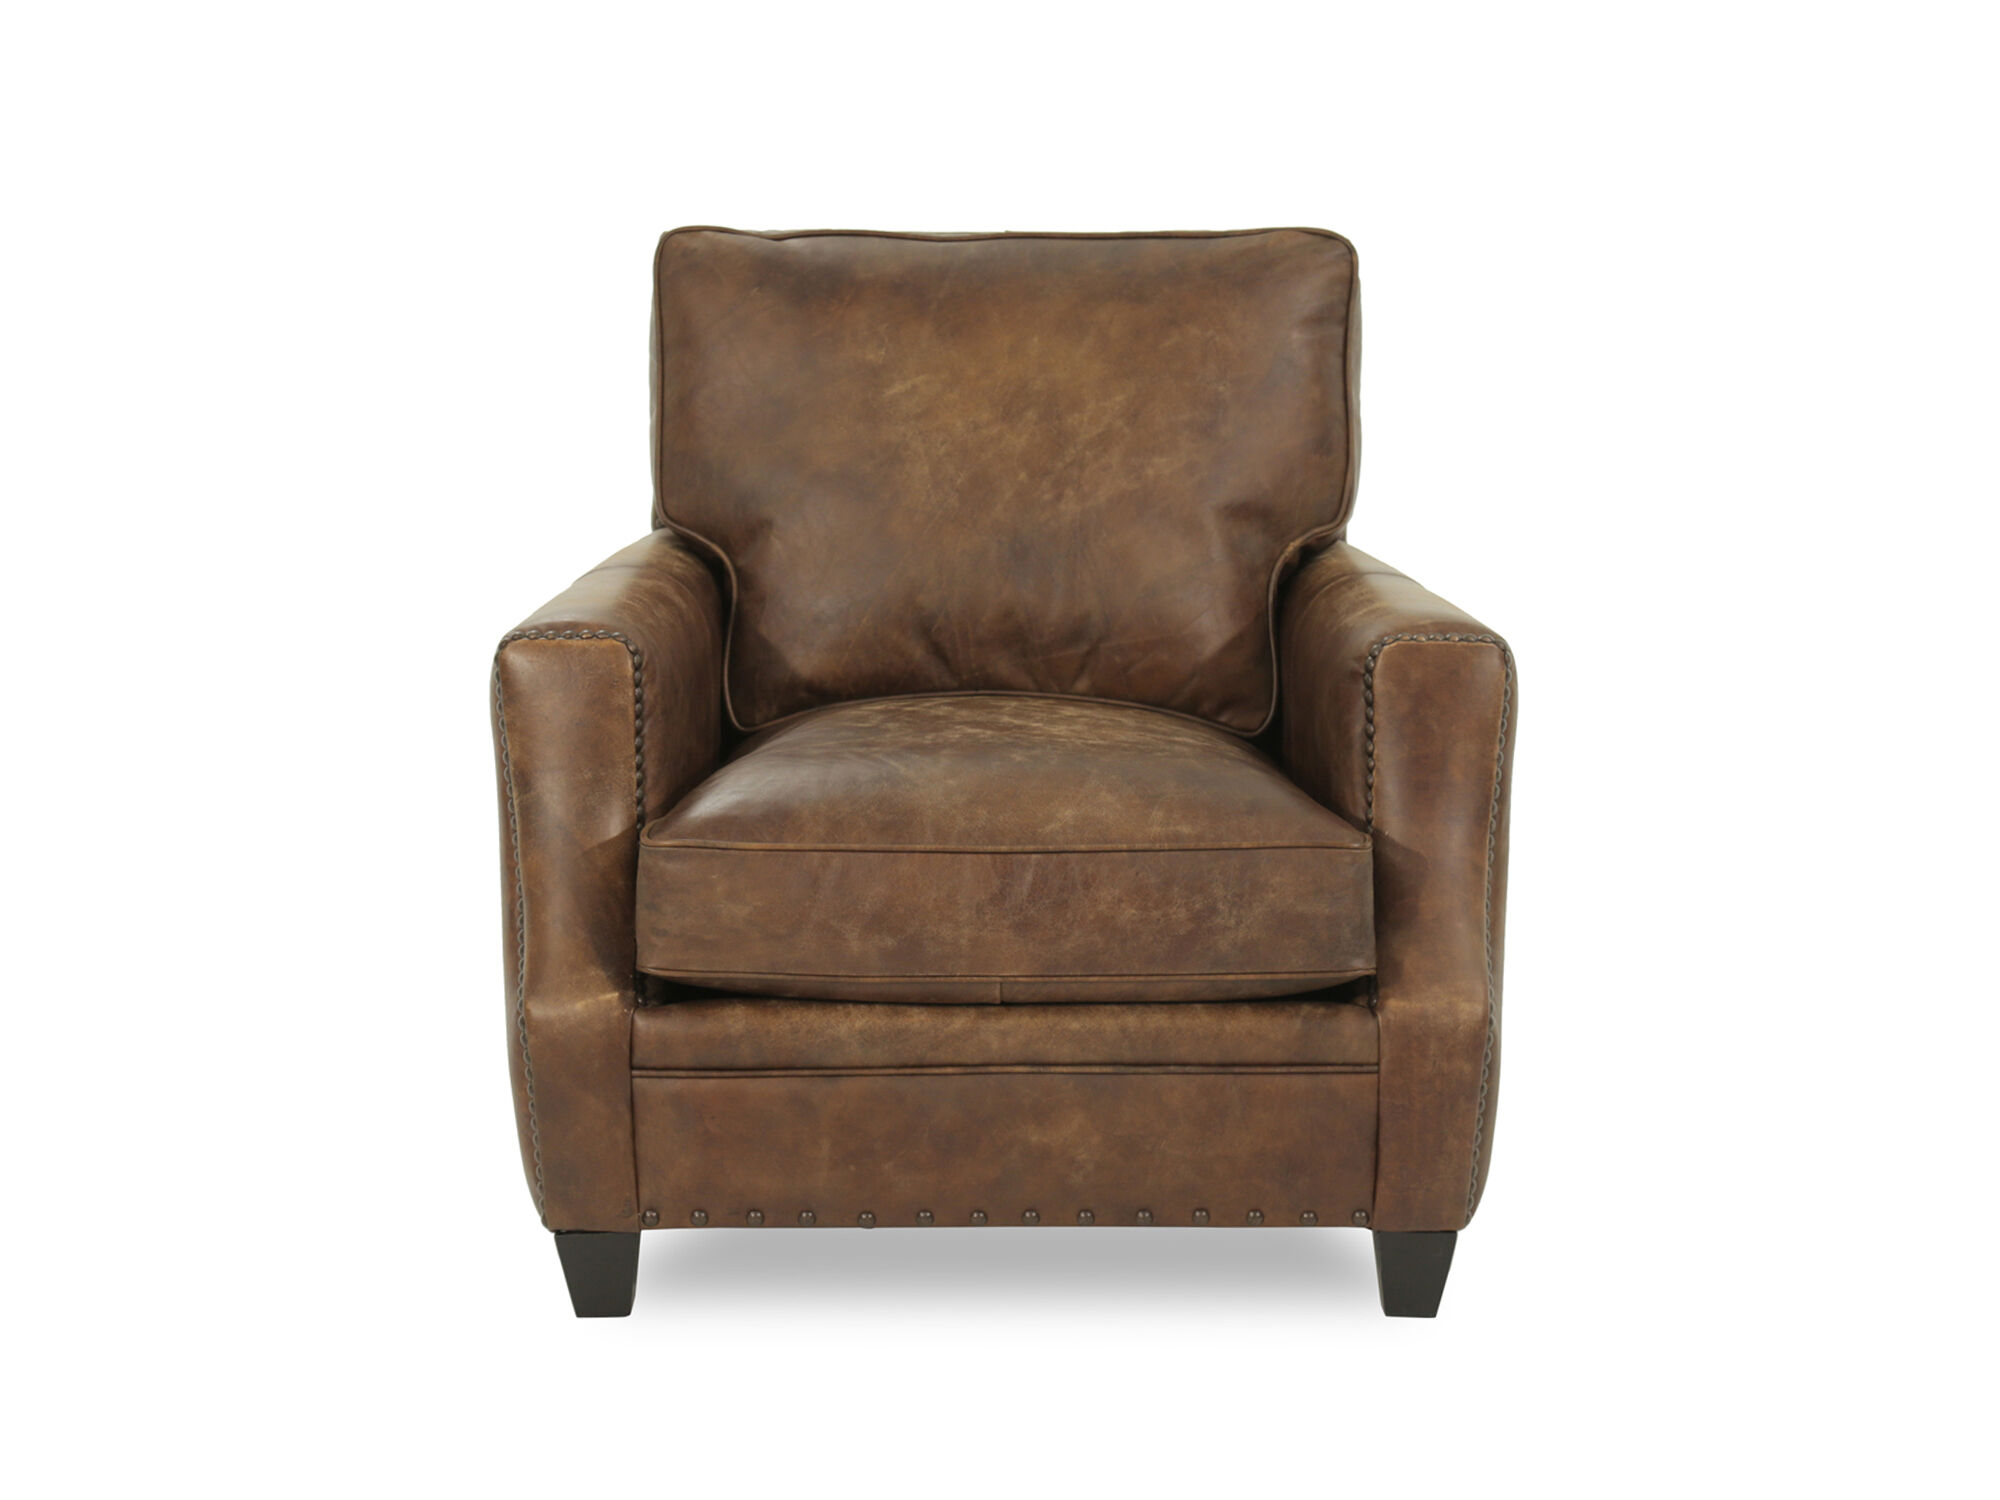 Bernhardt Leather Chair Bernhardt Barclay Leather Mocha Chair Mathis Brothers